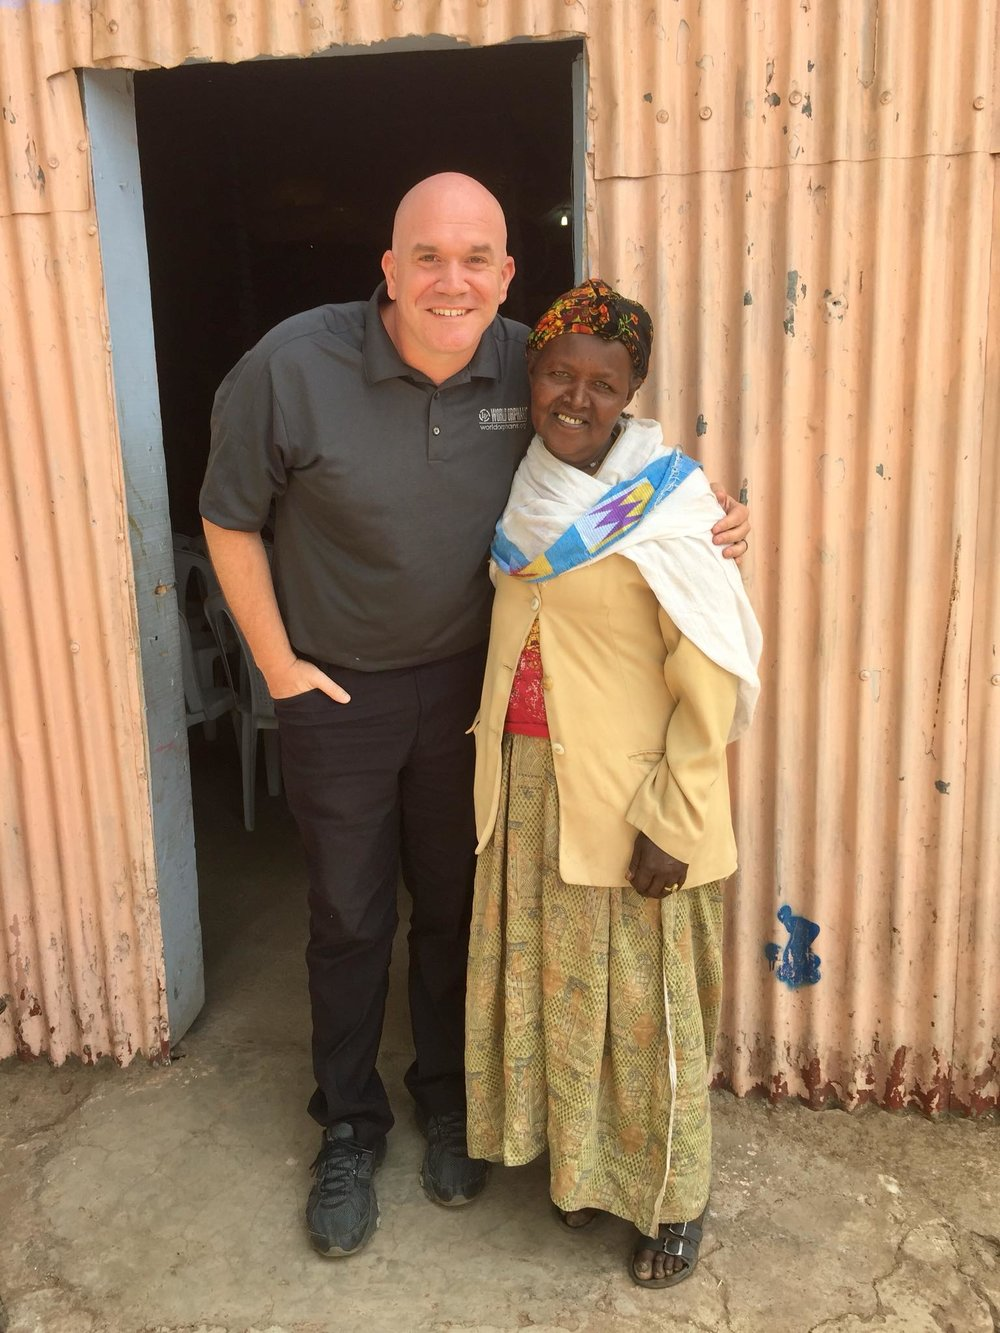 Kevin Squires with Debritu, an Ethiopia mother in the World Orphans Home Based Care Program